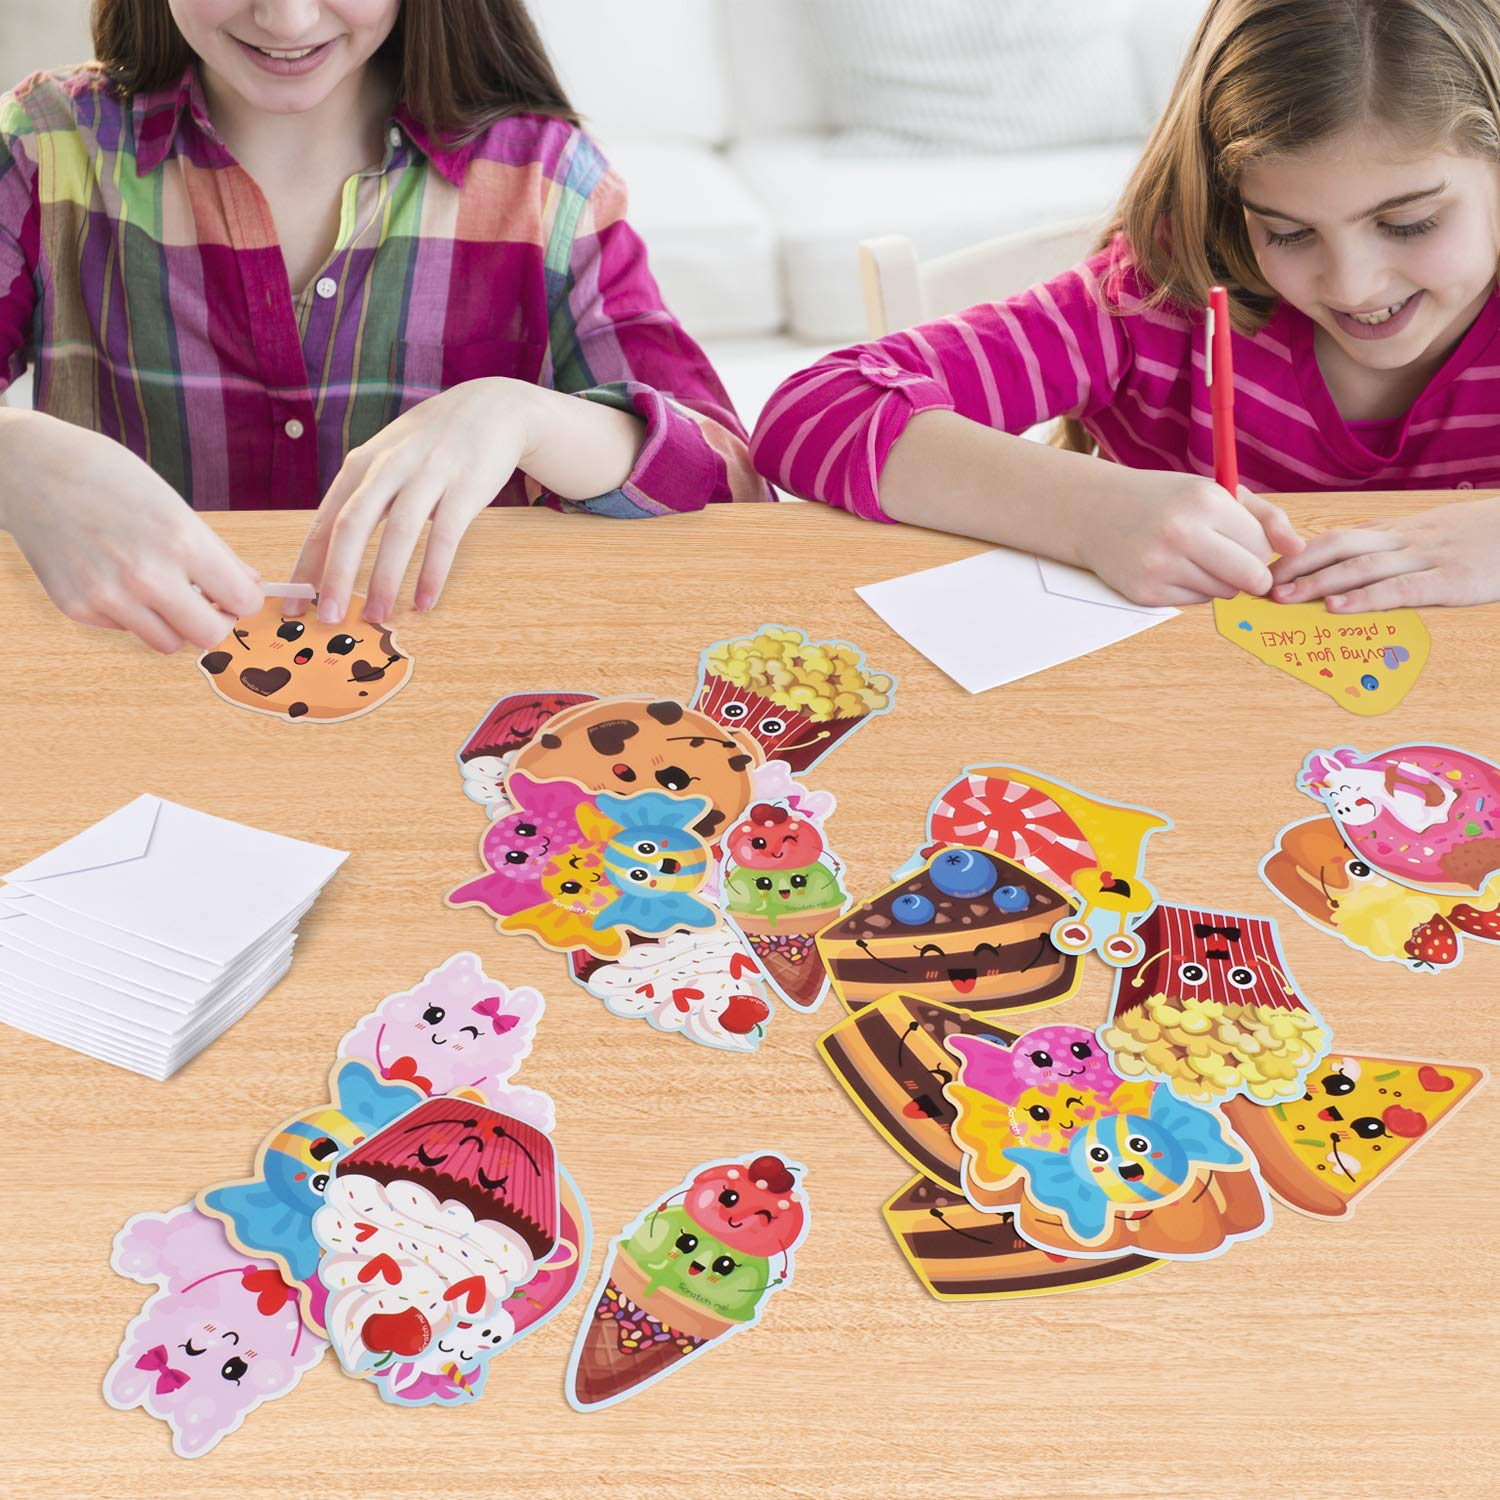 36 PCS Including 12 Different Patterns Scratch and Sniff Cards with 12 Scents for Valentine/'s Day HERZOME Valentines Day Cards for Kids Kids Exchange Treats for School Envelopes Included